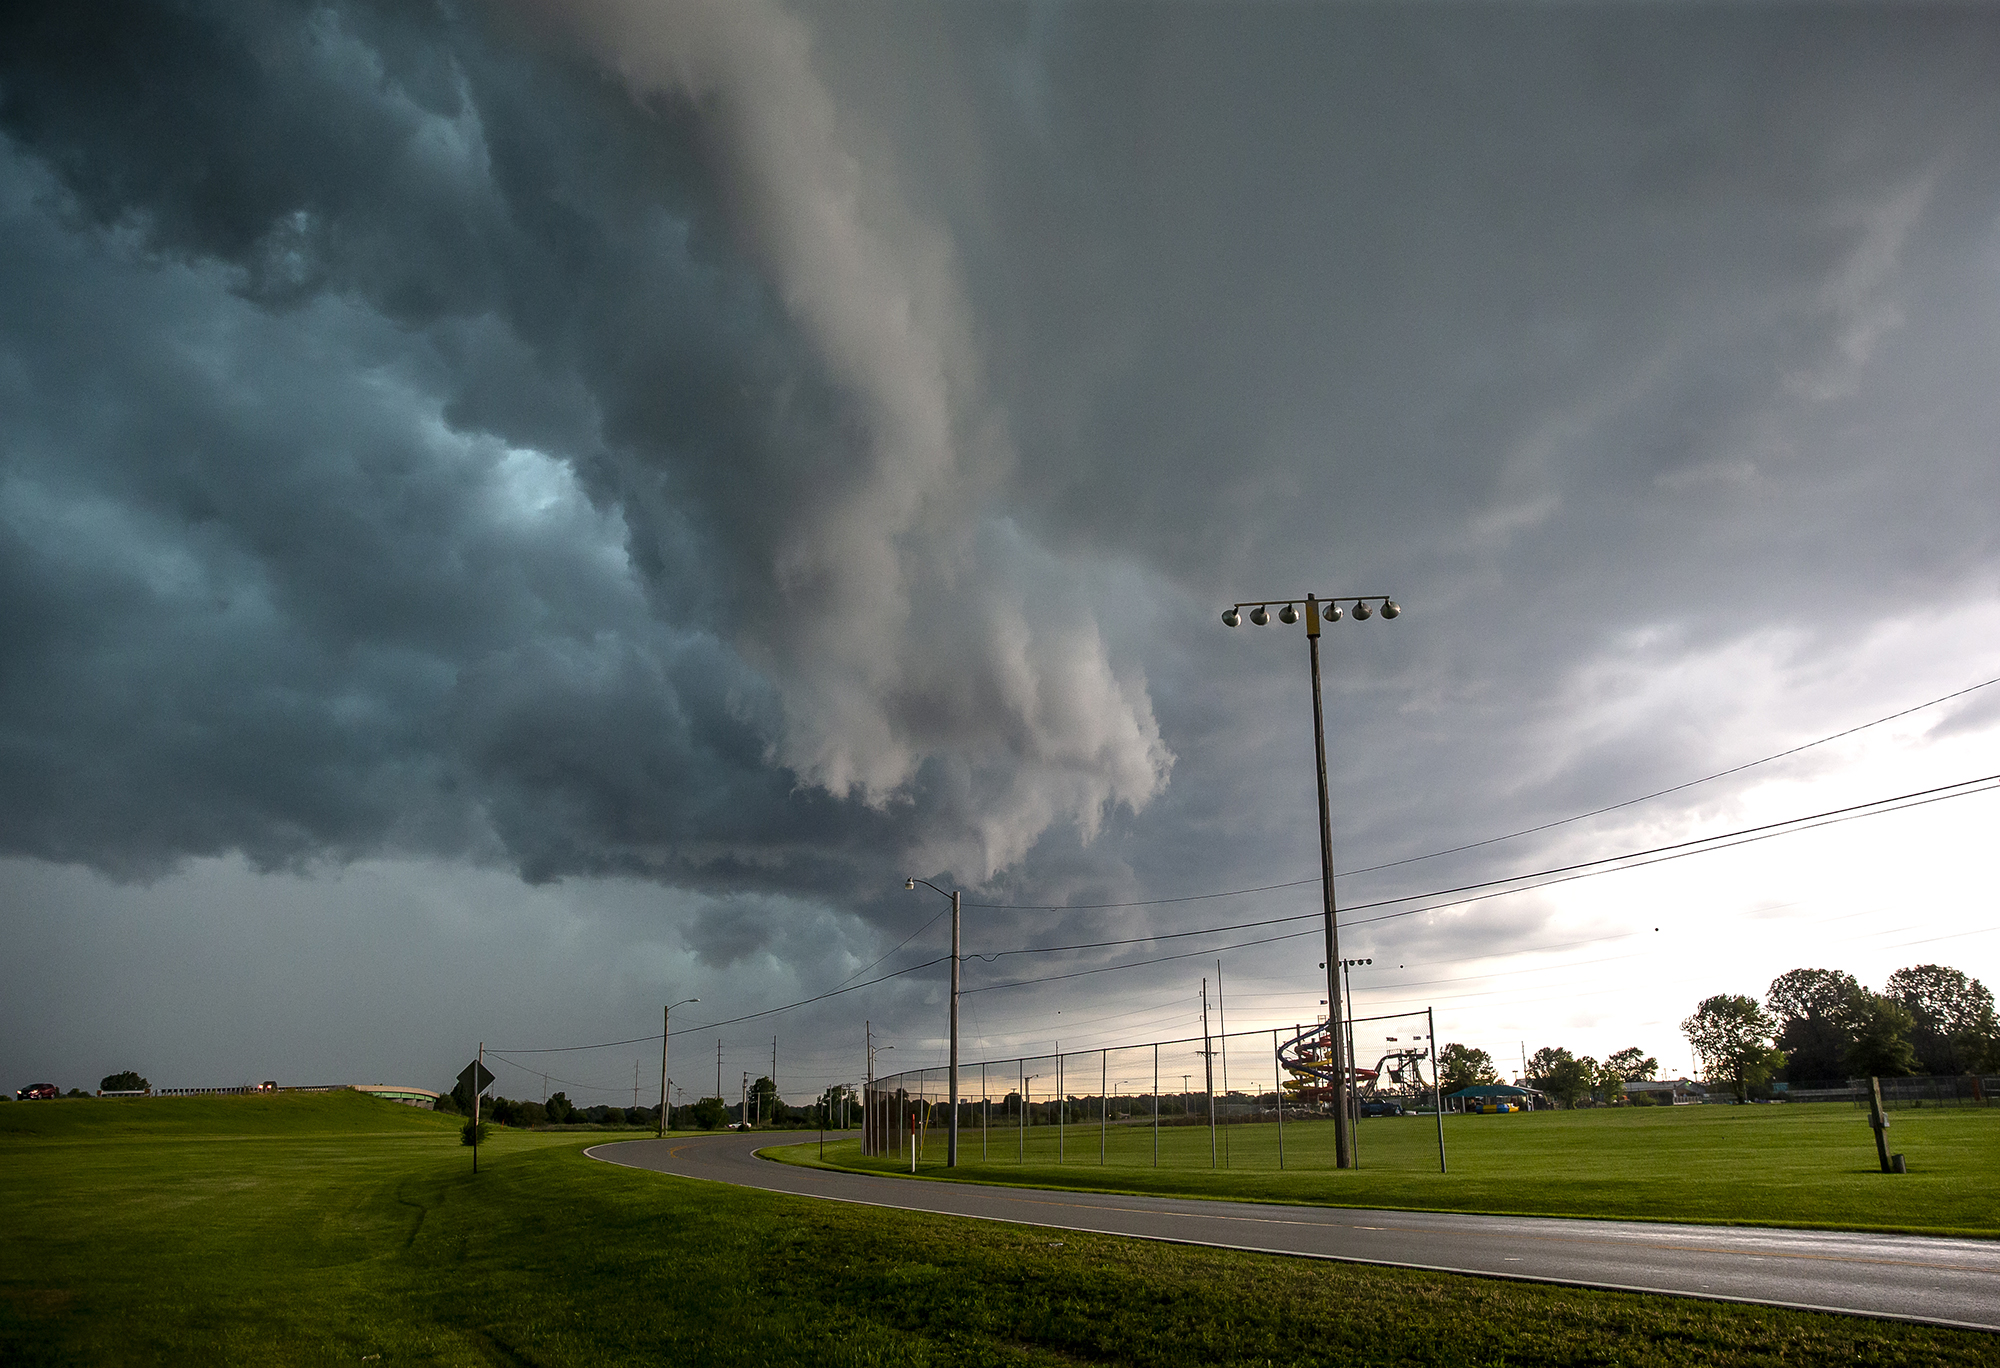 The leading edge of a severe thunderstorm billows over Knights Action Park triggers sever thunderstorm warnings throughout the Springfield area, Thursday, June 28, 2018, in Springfield, Ill. The storm knocked out power to over 600 CWLP customers in 19 outage areas. [Justin L. Fowler/The State Journal-Register]